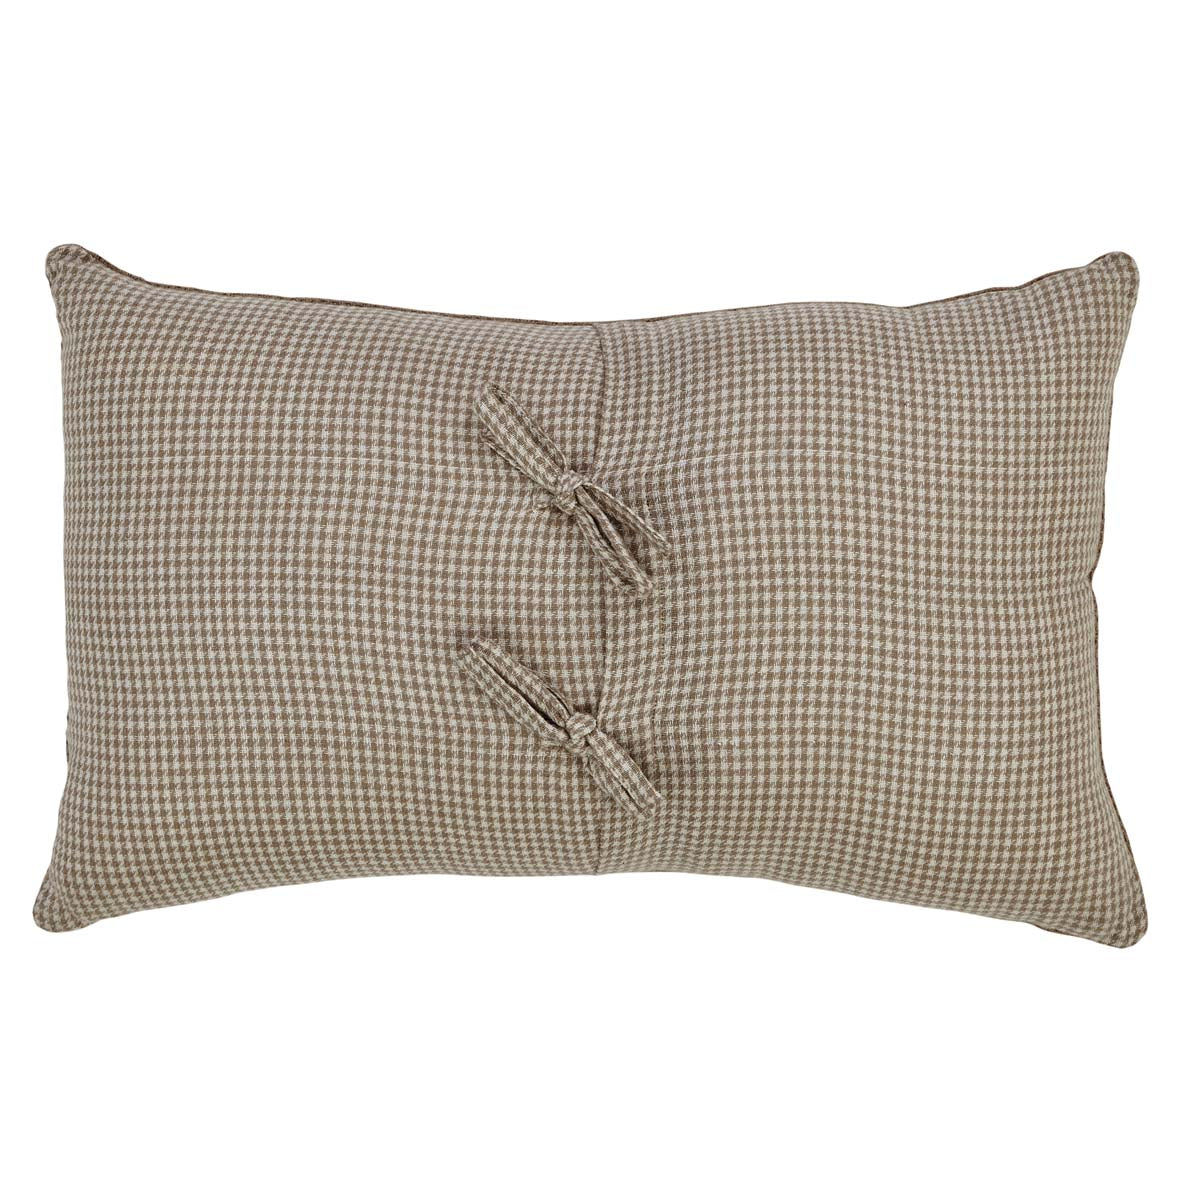 Pearlescent Pillow 14x22 - Woodrol